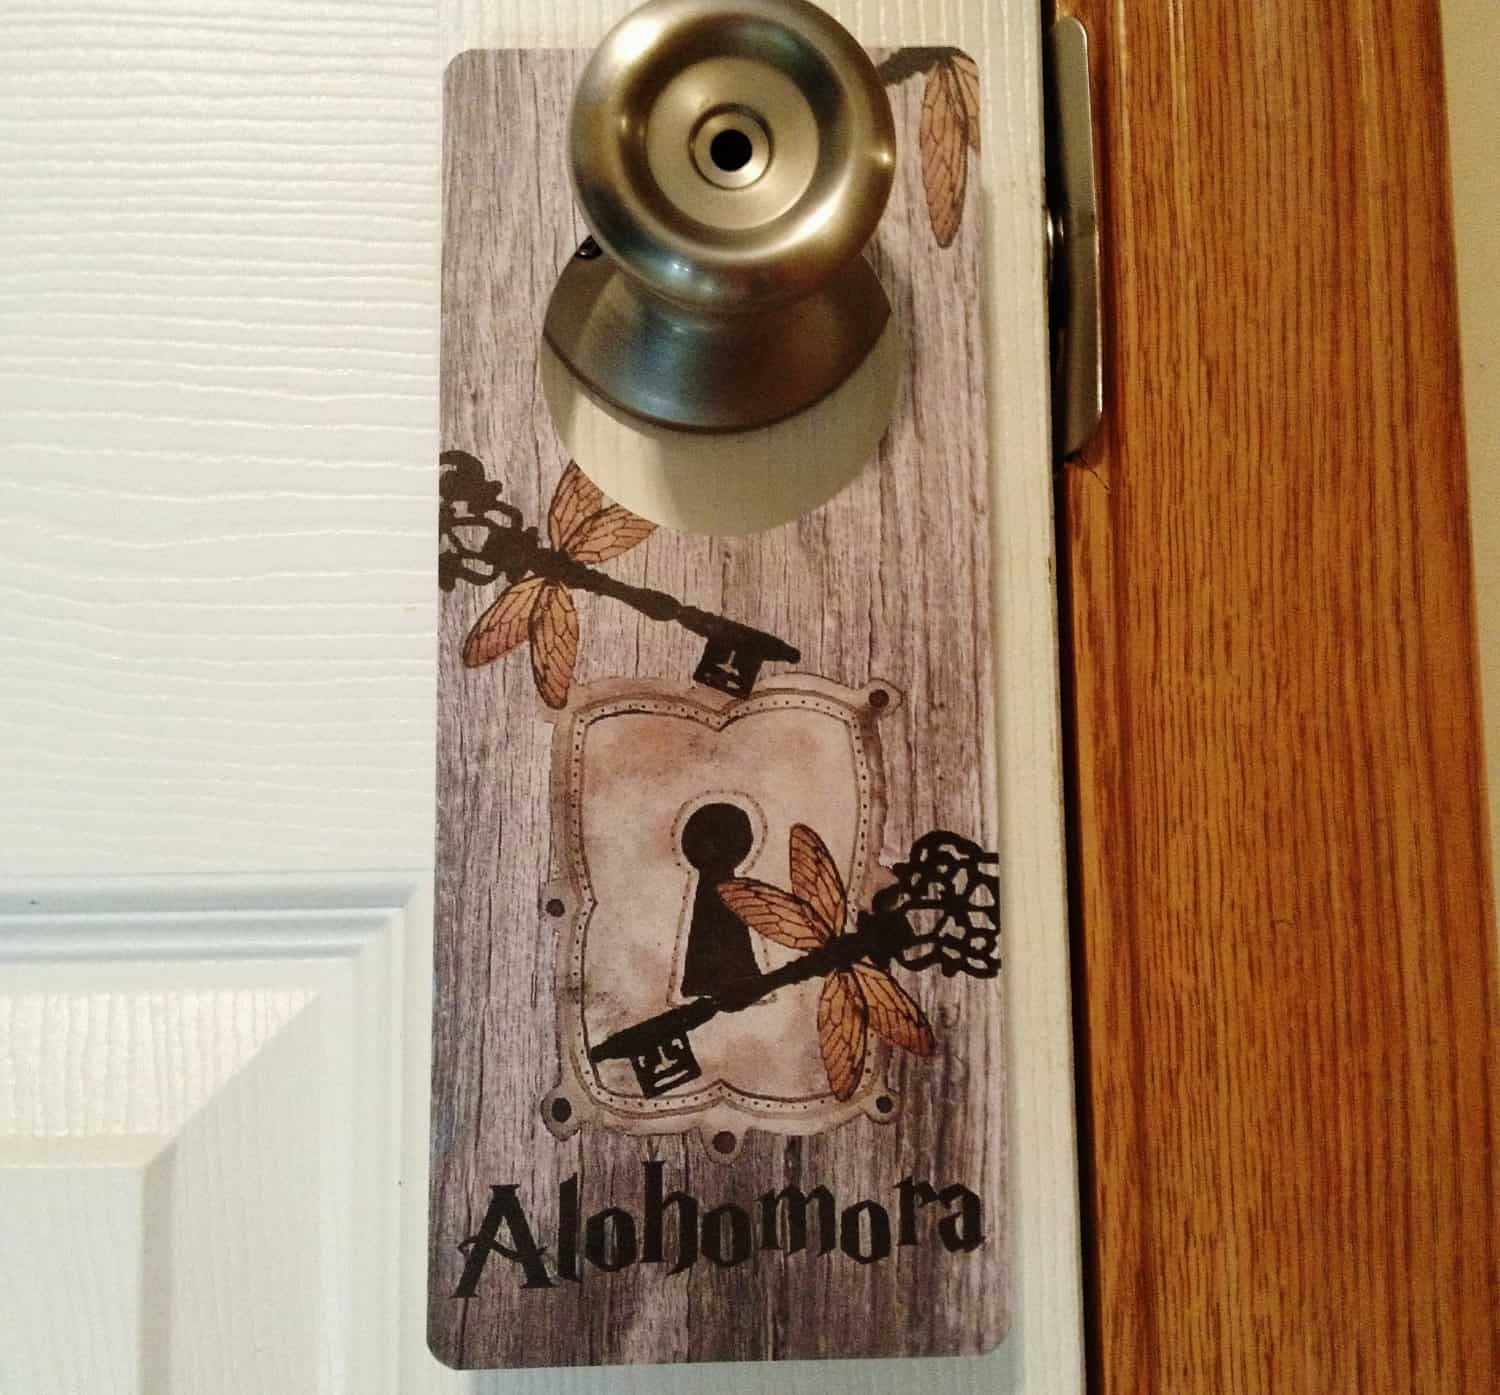 Harry potter inspired door knob hanger